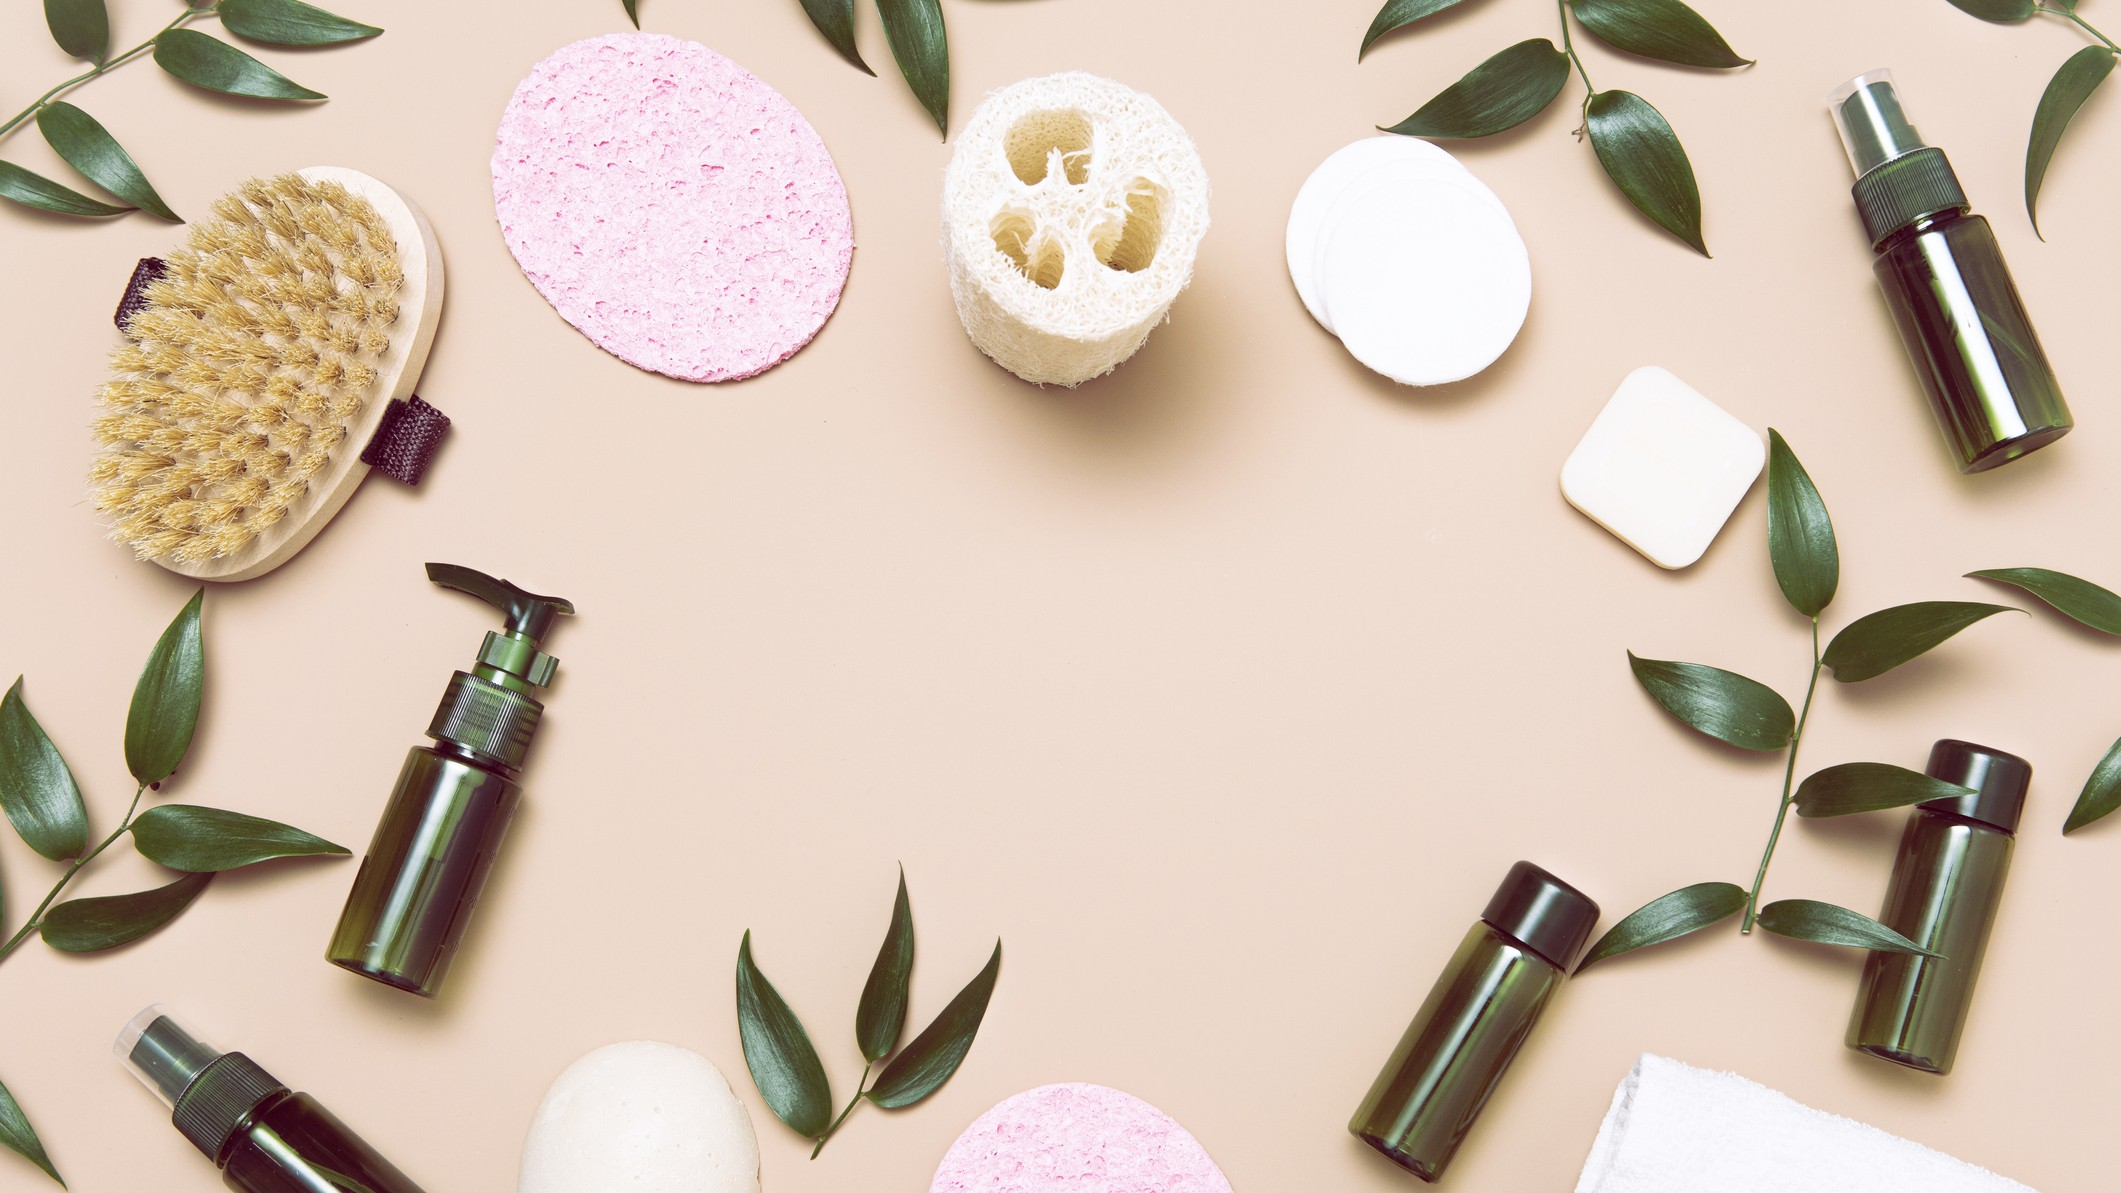 natural skin care asx share price represented by cosmetic bottles, leaves and sponges